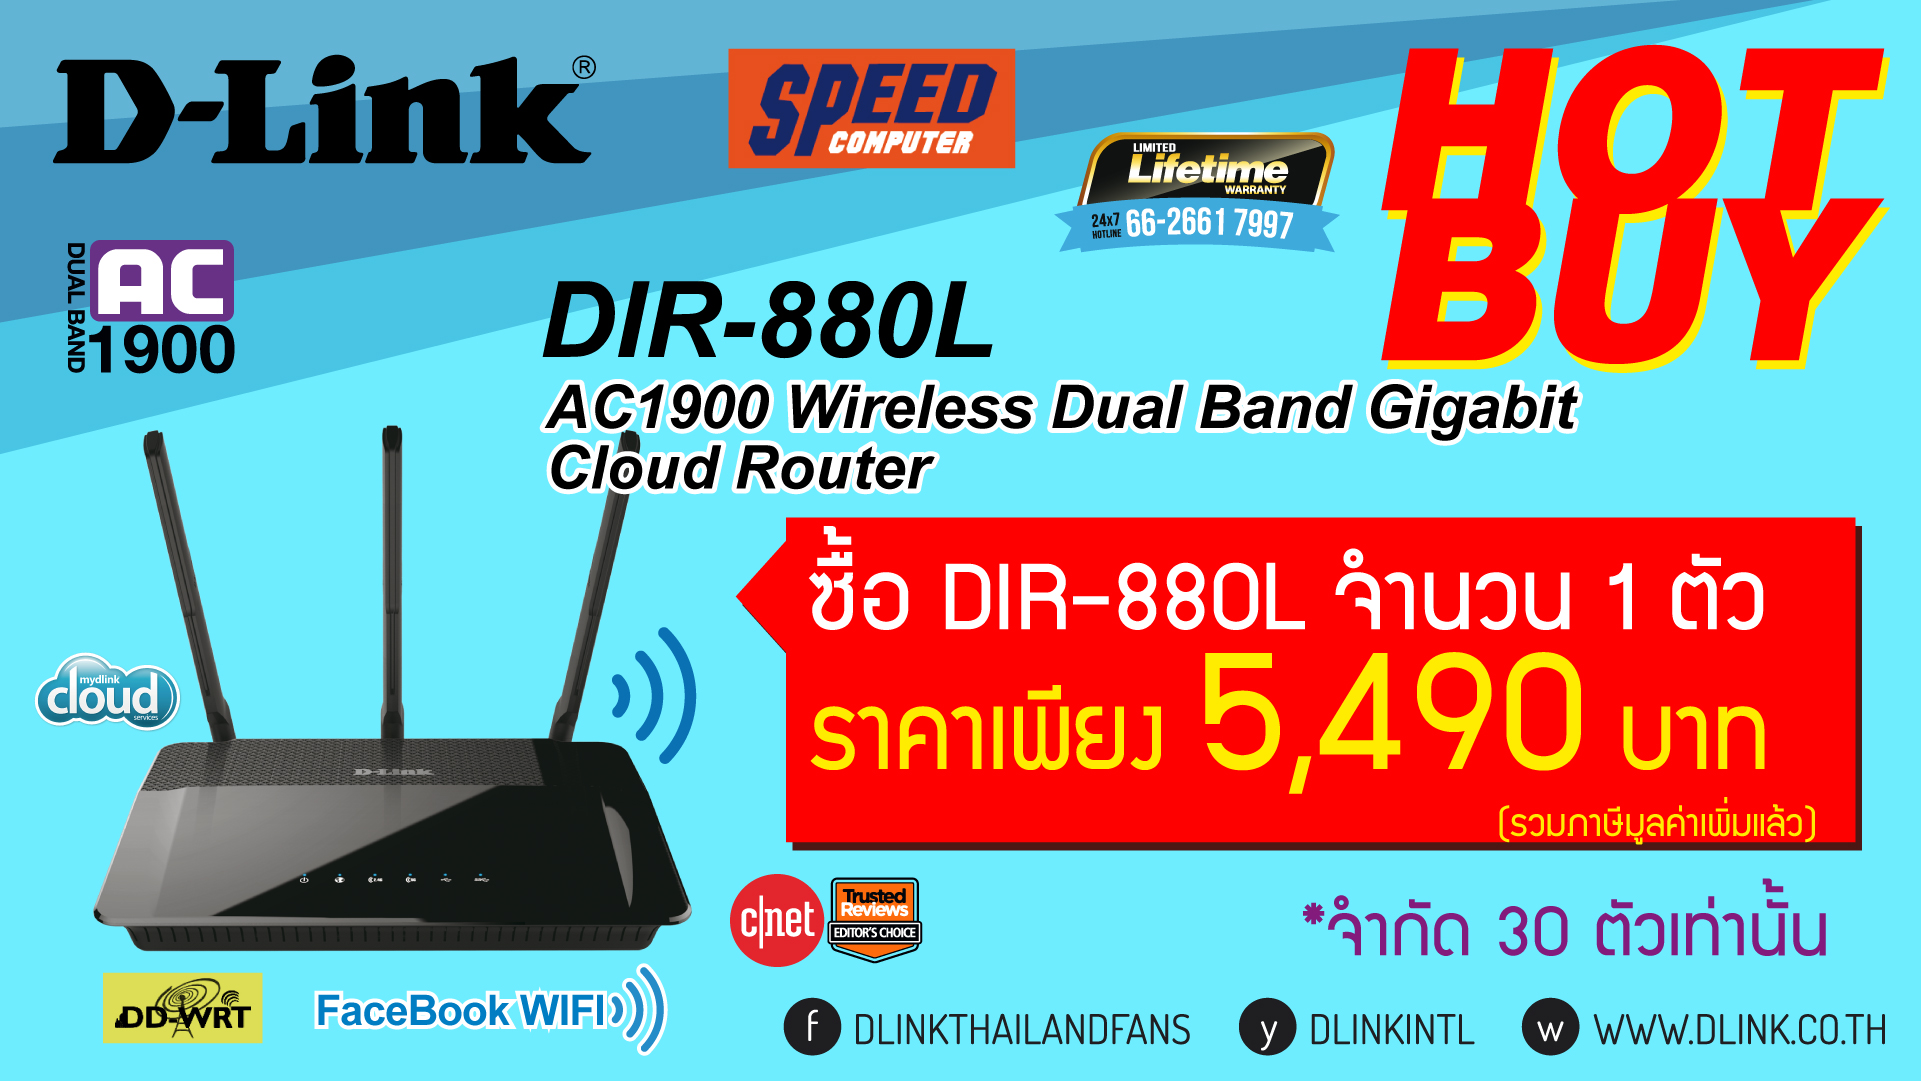 D-Link-Commart-Screen-for-Speed-March-16-09